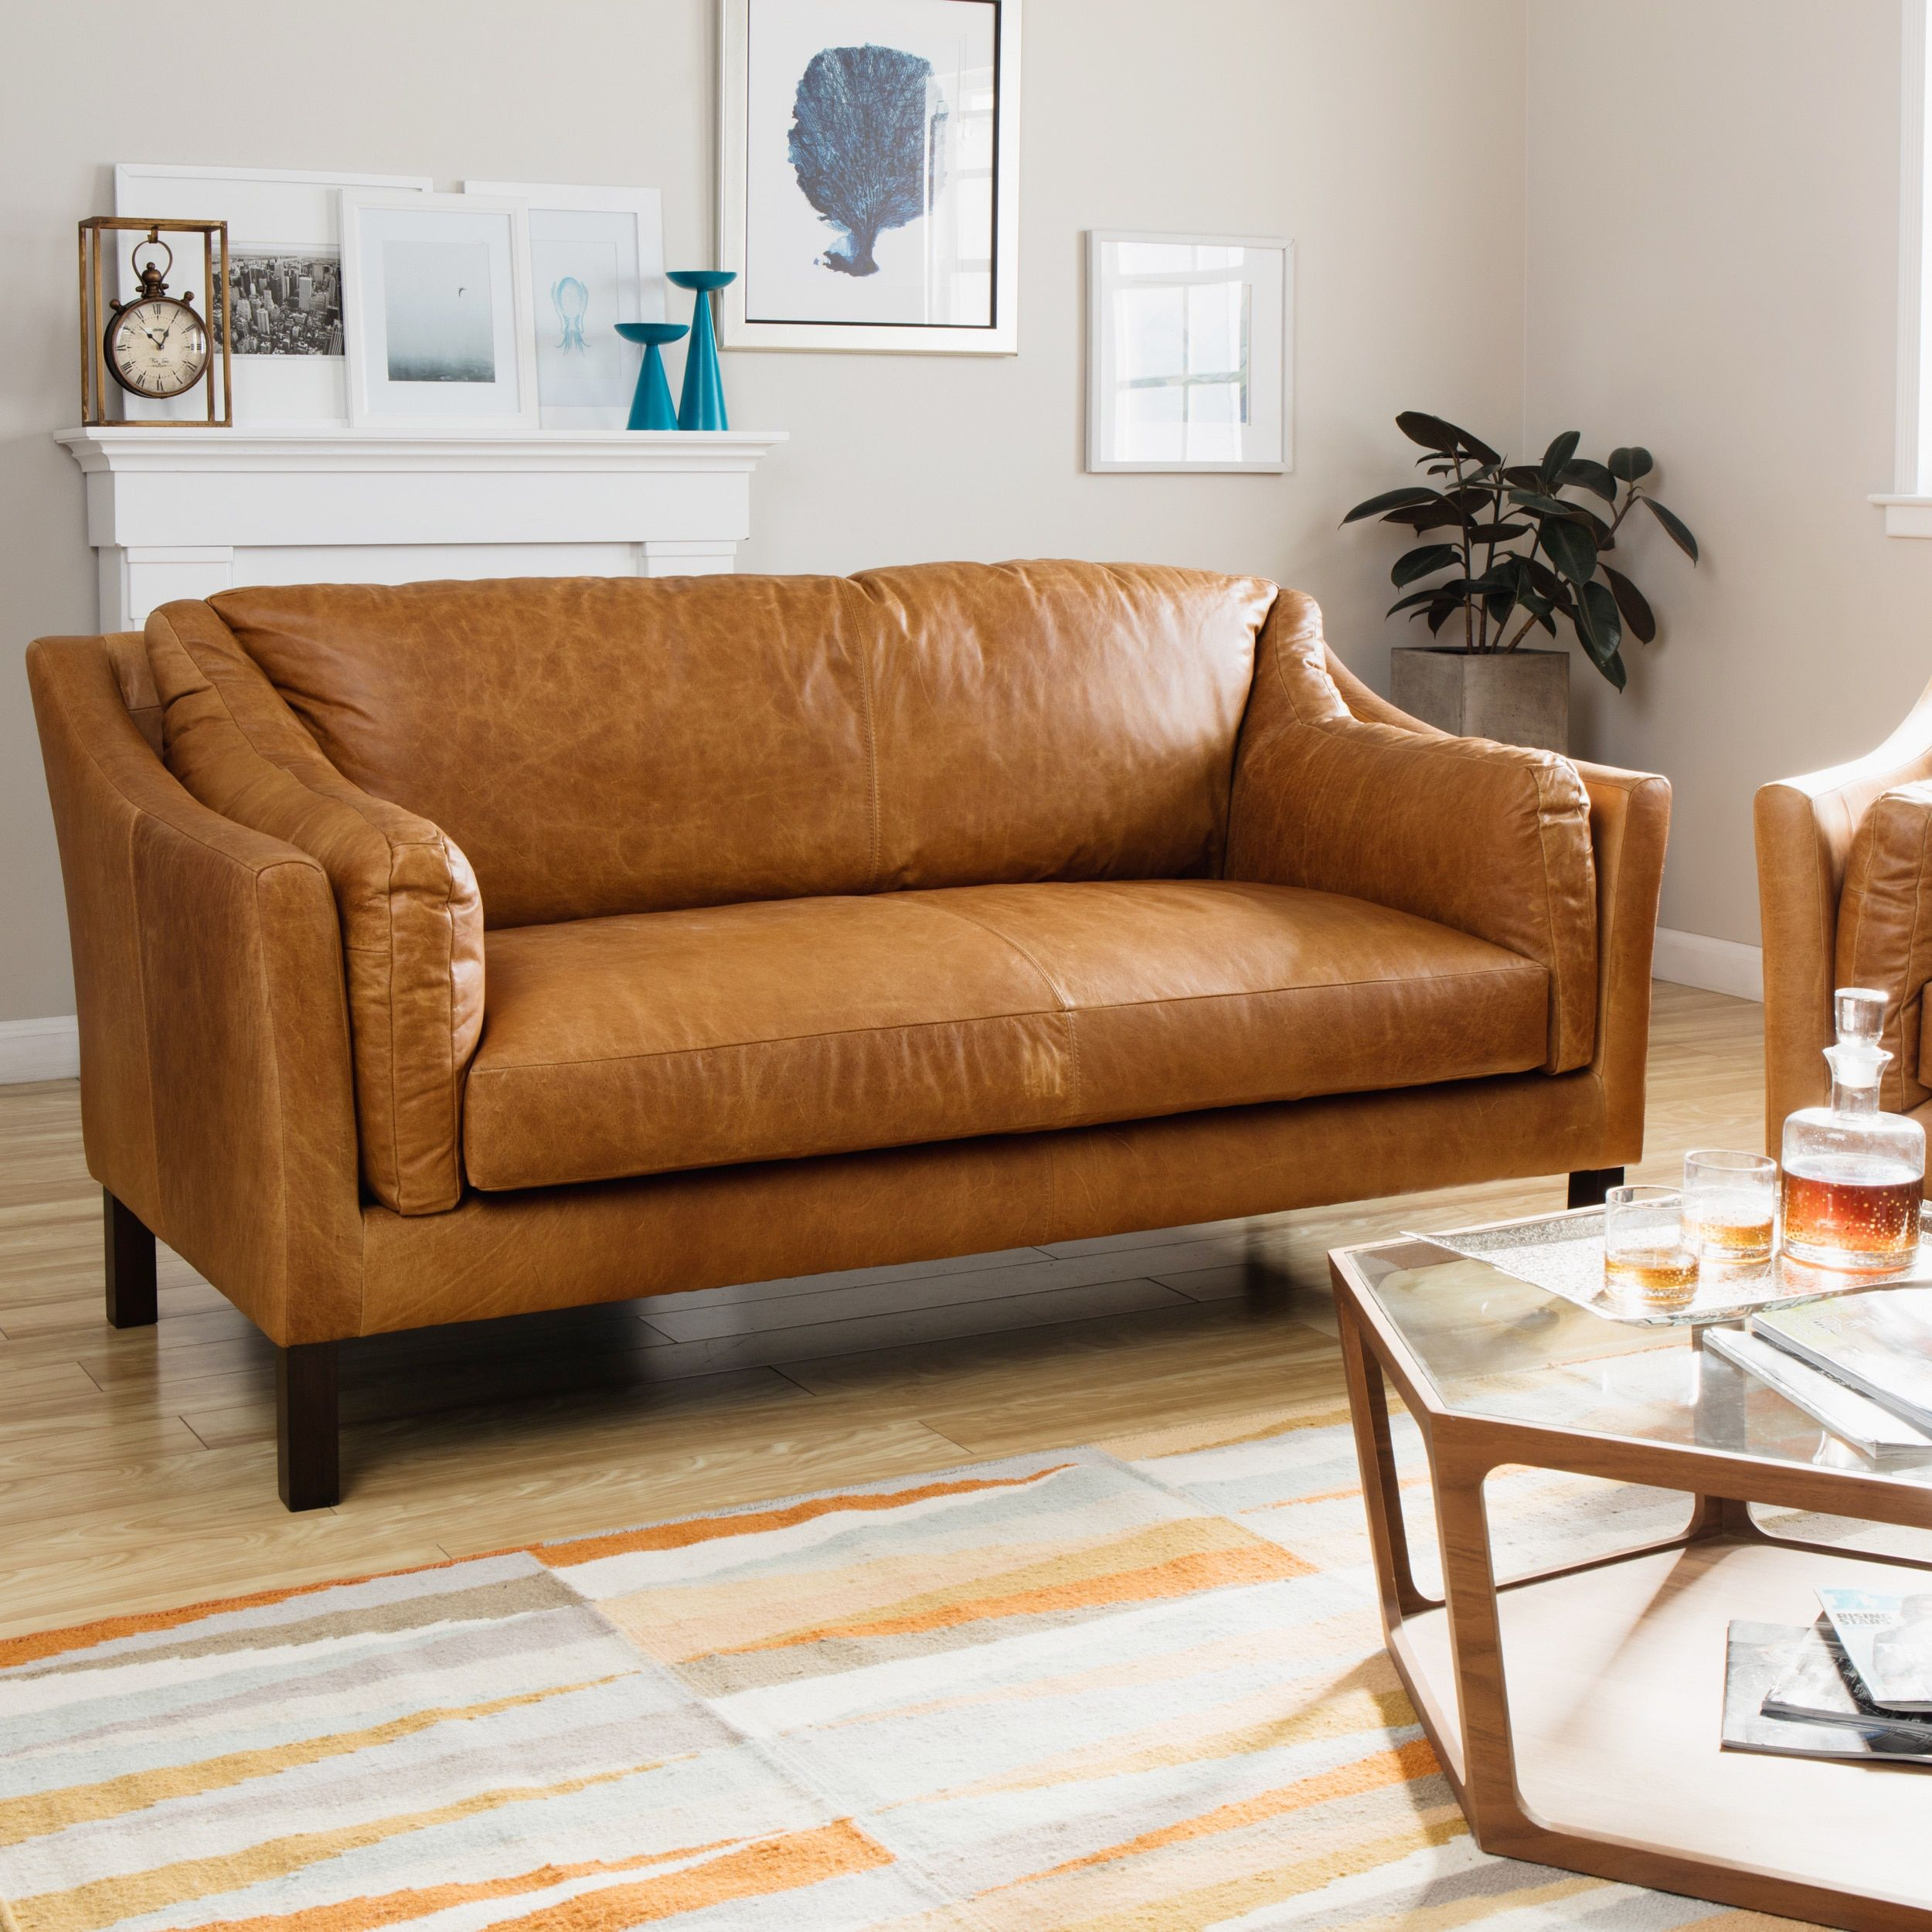 Reginald Charme Russet Leather Sofa Ping The Best Deals On Sofas Loveseats